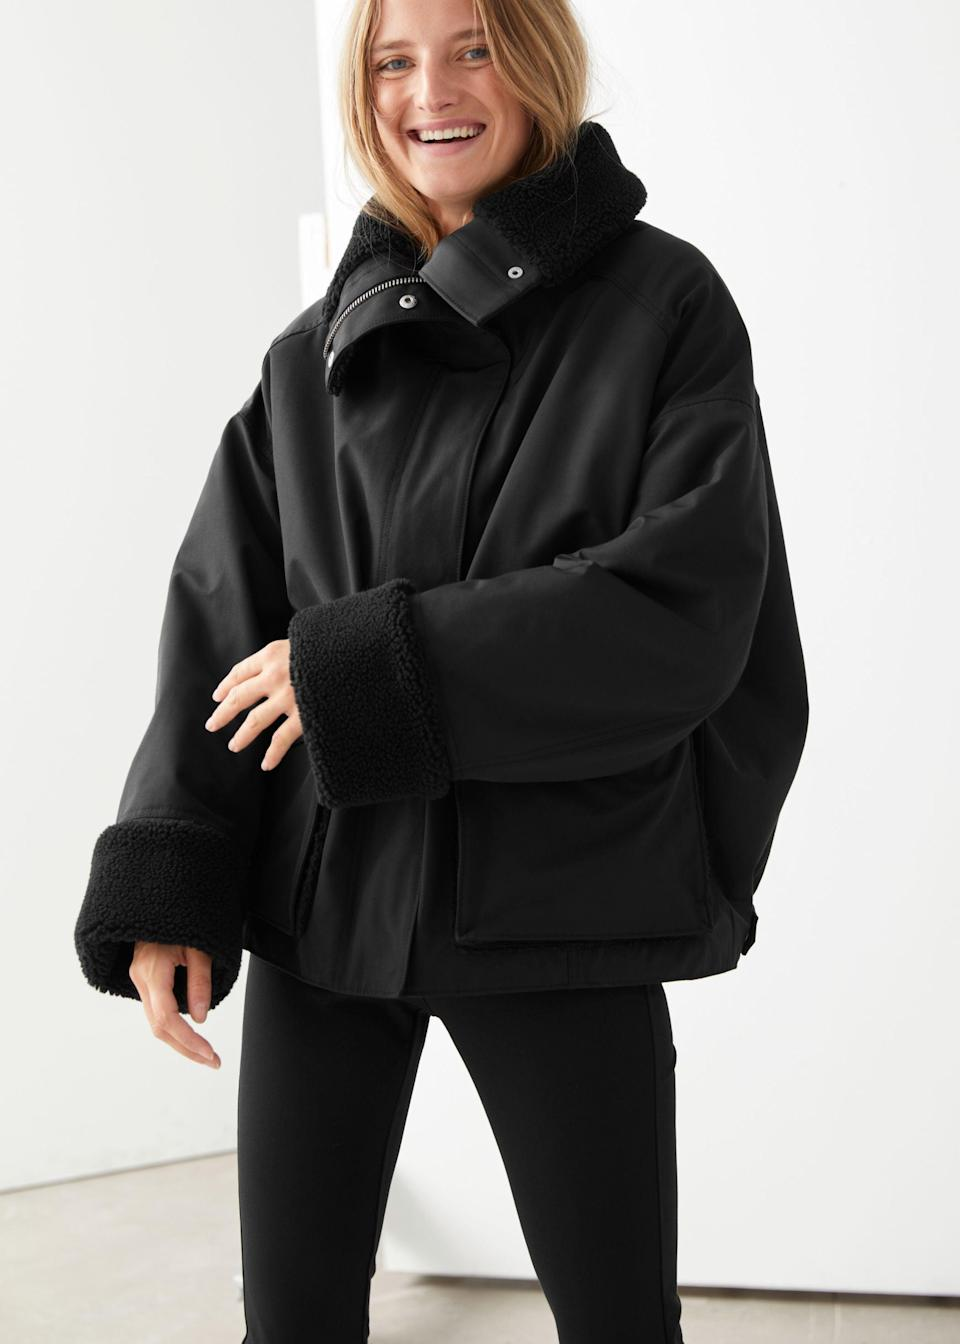 "<br><br><strong>& Other Stories</strong> Short Oversized Puffer Jacket, $, available at <a href=""https://go.skimresources.com/?id=30283X879131&url=https%3A%2F%2Fwww.stories.com%2Fen_usd%2Fclothing%2Fjackets-coats%2Fjackets%2Fproduct.oversized-boxy-shearling-jacket-black.0878973001.html"" rel=""nofollow noopener"" target=""_blank"" data-ylk=""slk:& Other Stories"" class=""link rapid-noclick-resp"">& Other Stories</a>"